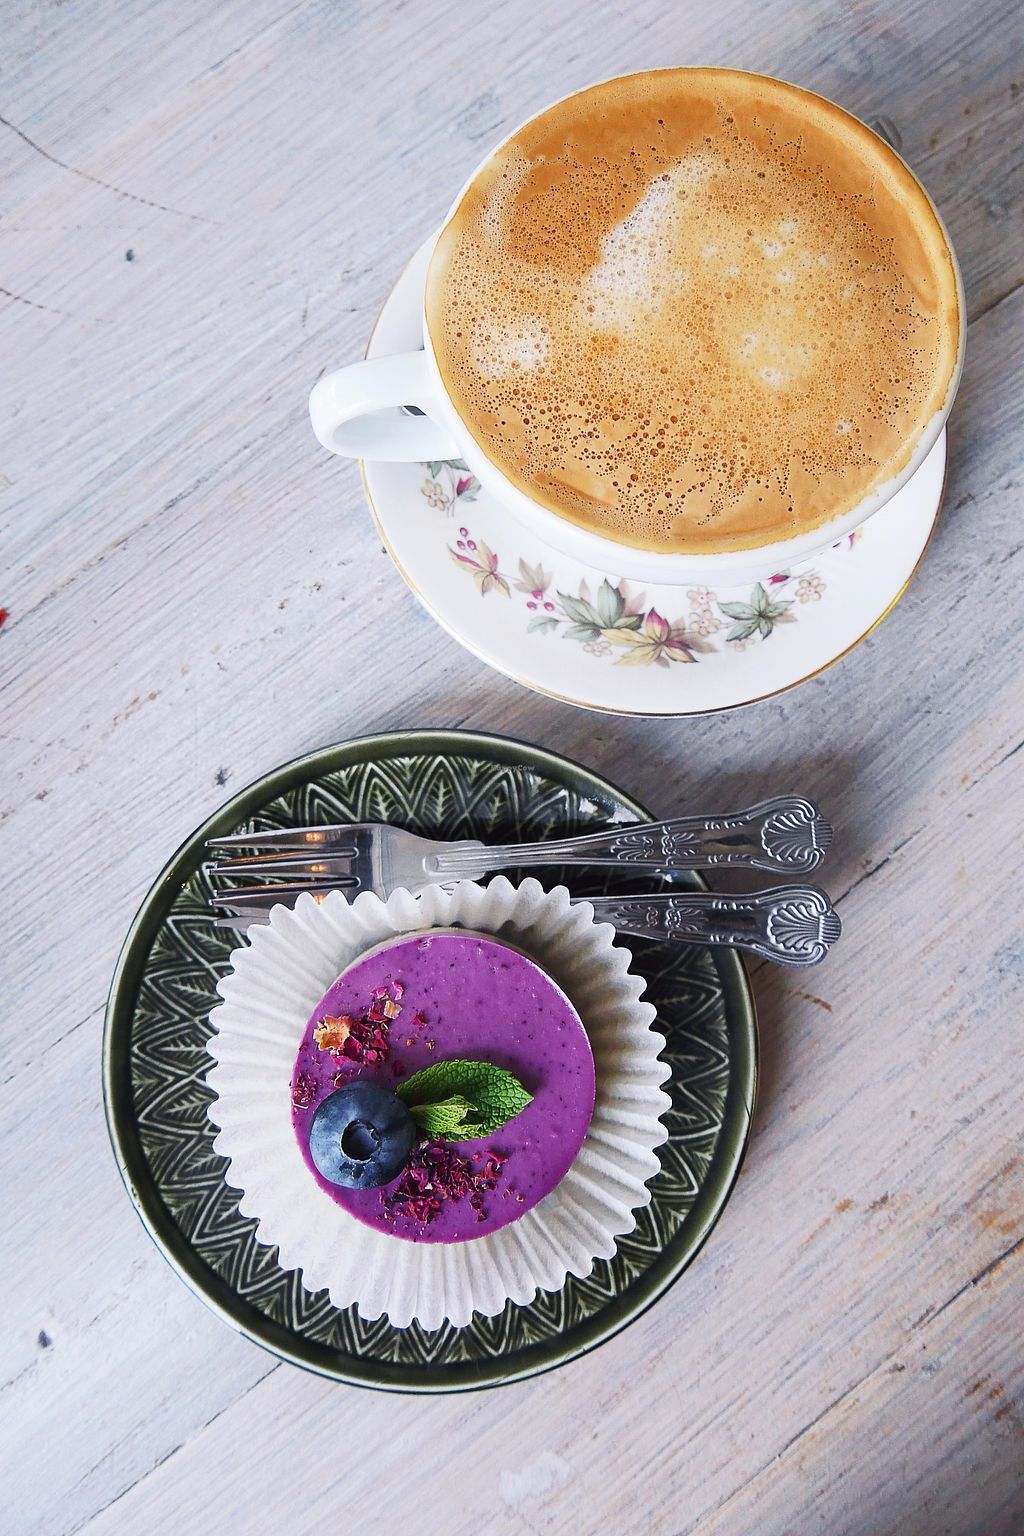 """Photo of Paradise Unbakery  by <a href=""""/members/profile/YukiLim"""">YukiLim</a> <br/>Raw blueberry cake with an oat flat white <br/> September 21, 2017  - <a href='/contact/abuse/image/78199/306663'>Report</a>"""